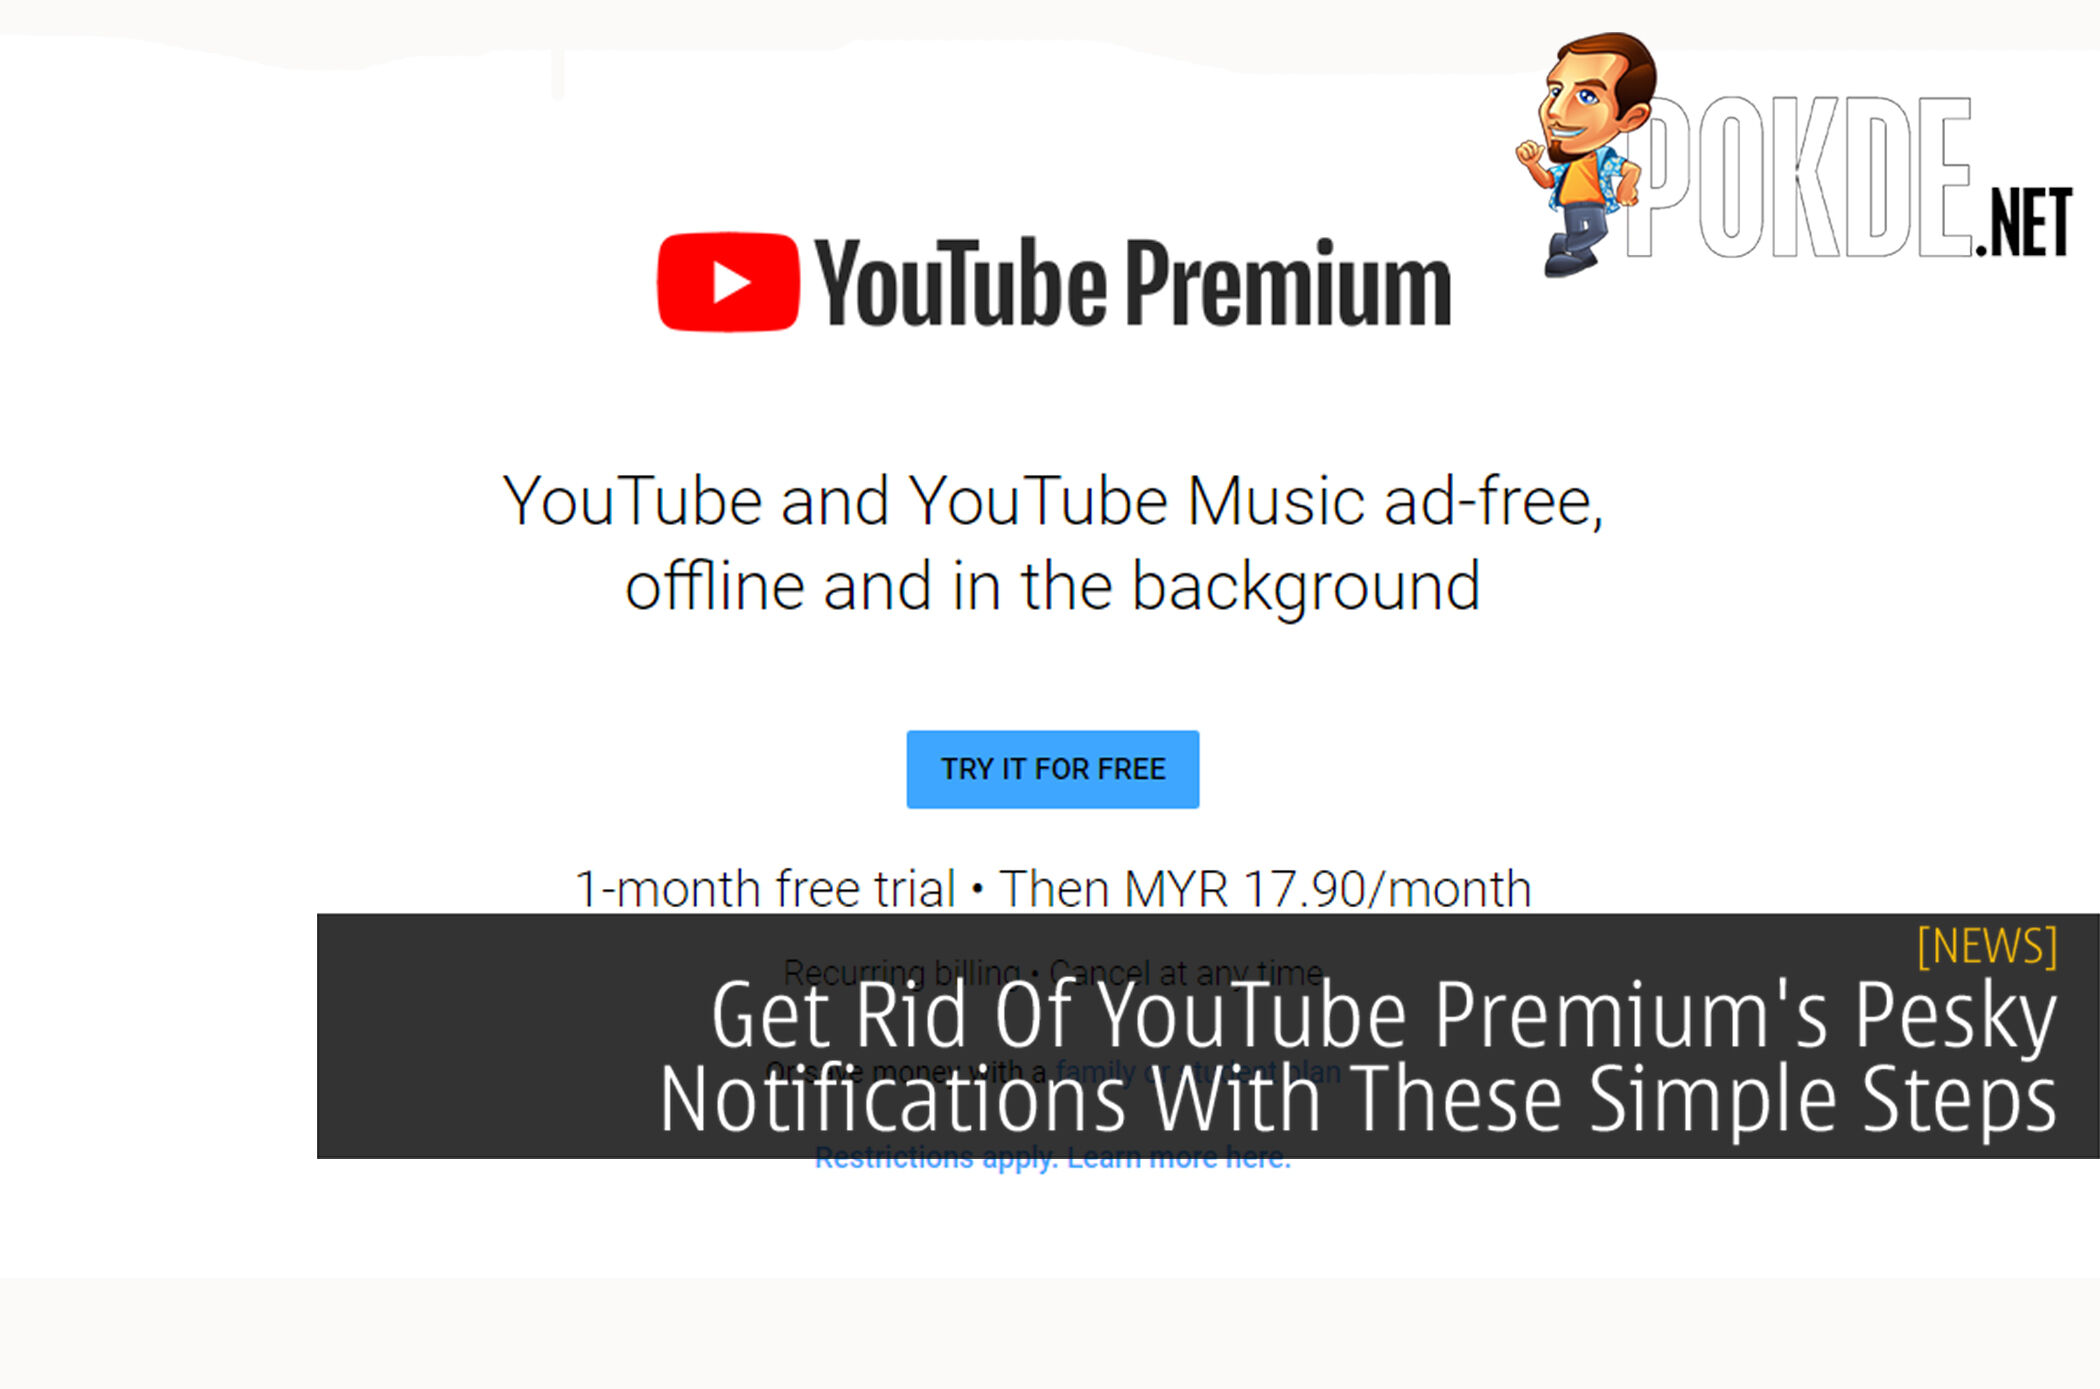 Get Rid Of YouTube Premium's Pesky Notifications With These Simple Steps 2